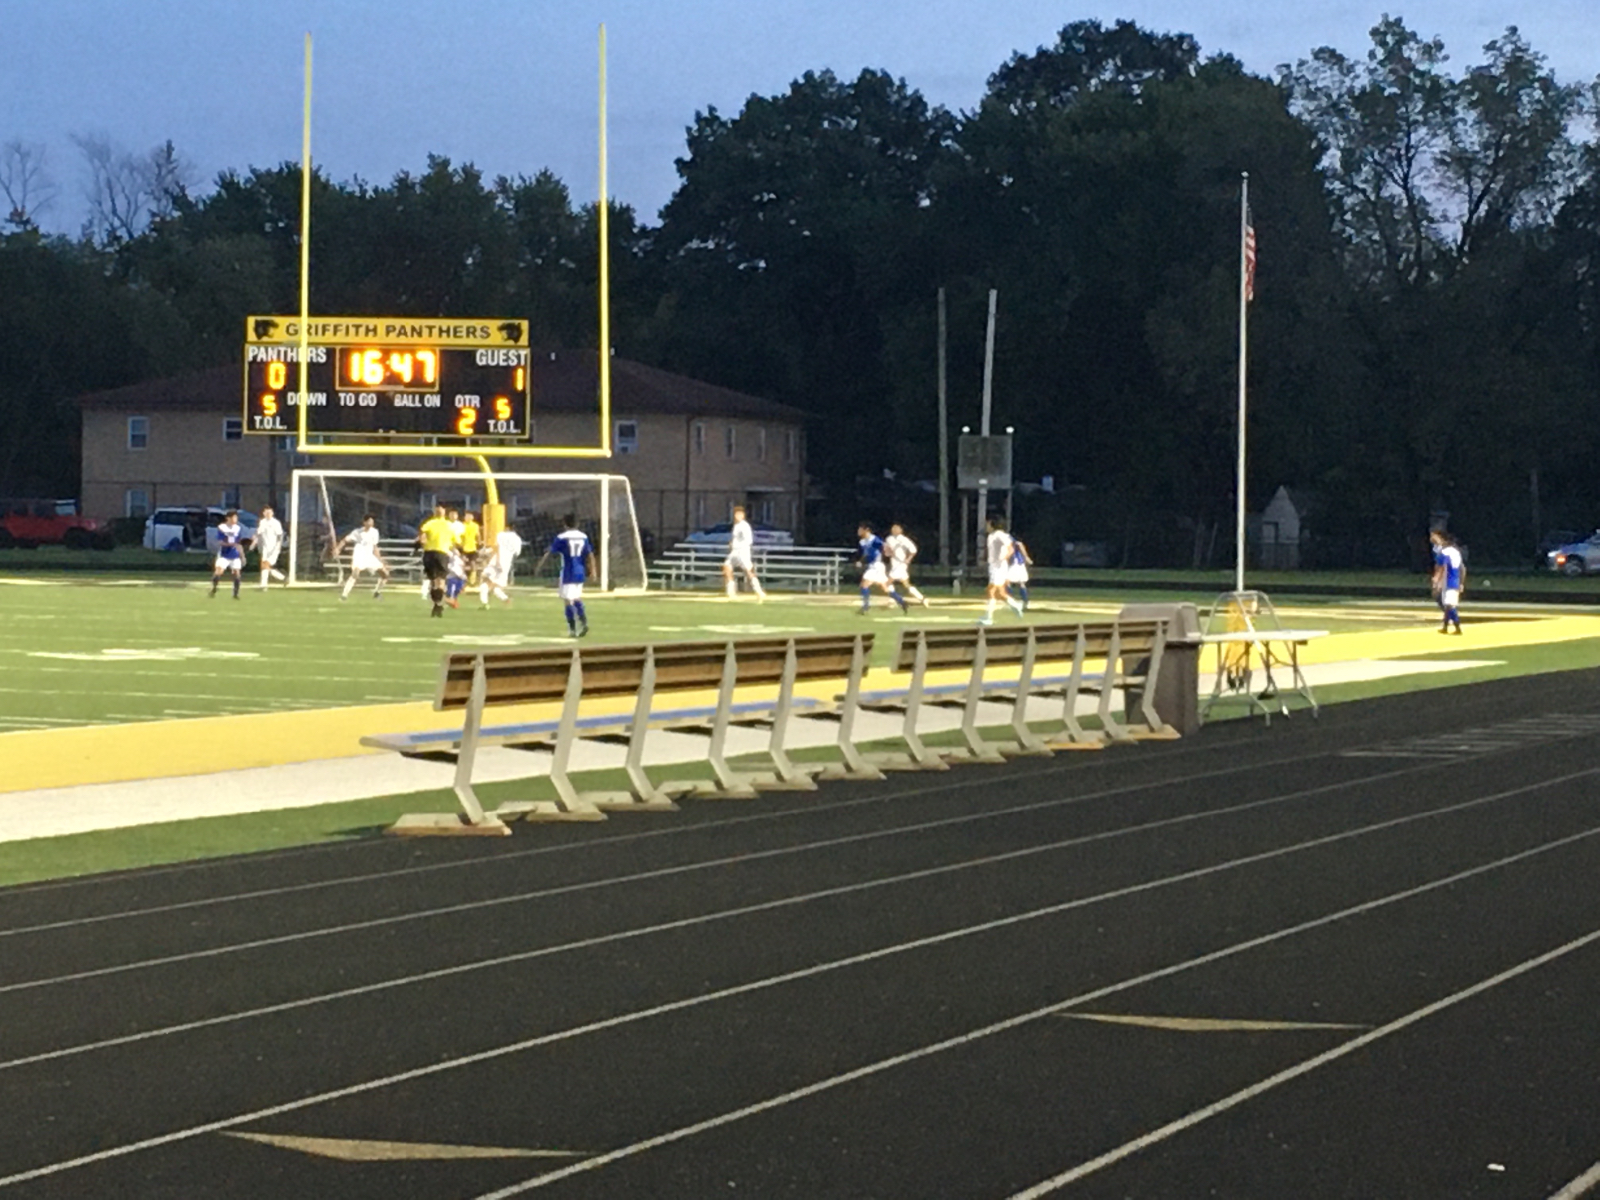 Boys Soccer Sect. Update: Pioneers trail 1-0 with 15 min to play